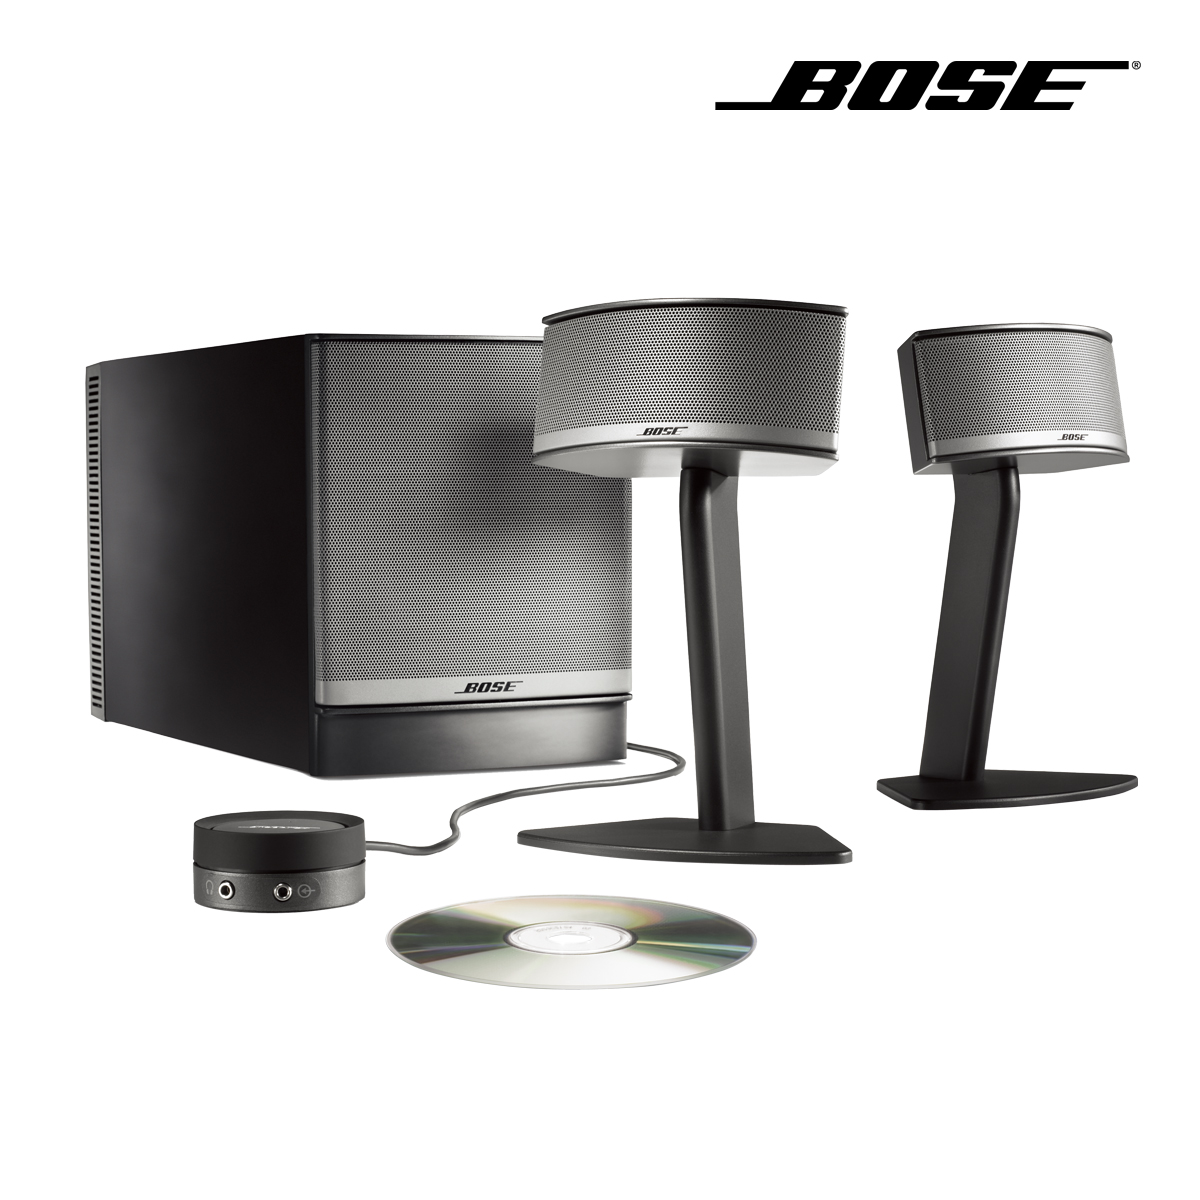 bose c5 bose v35 bose bose 5 1. Black Bedroom Furniture Sets. Home Design Ideas